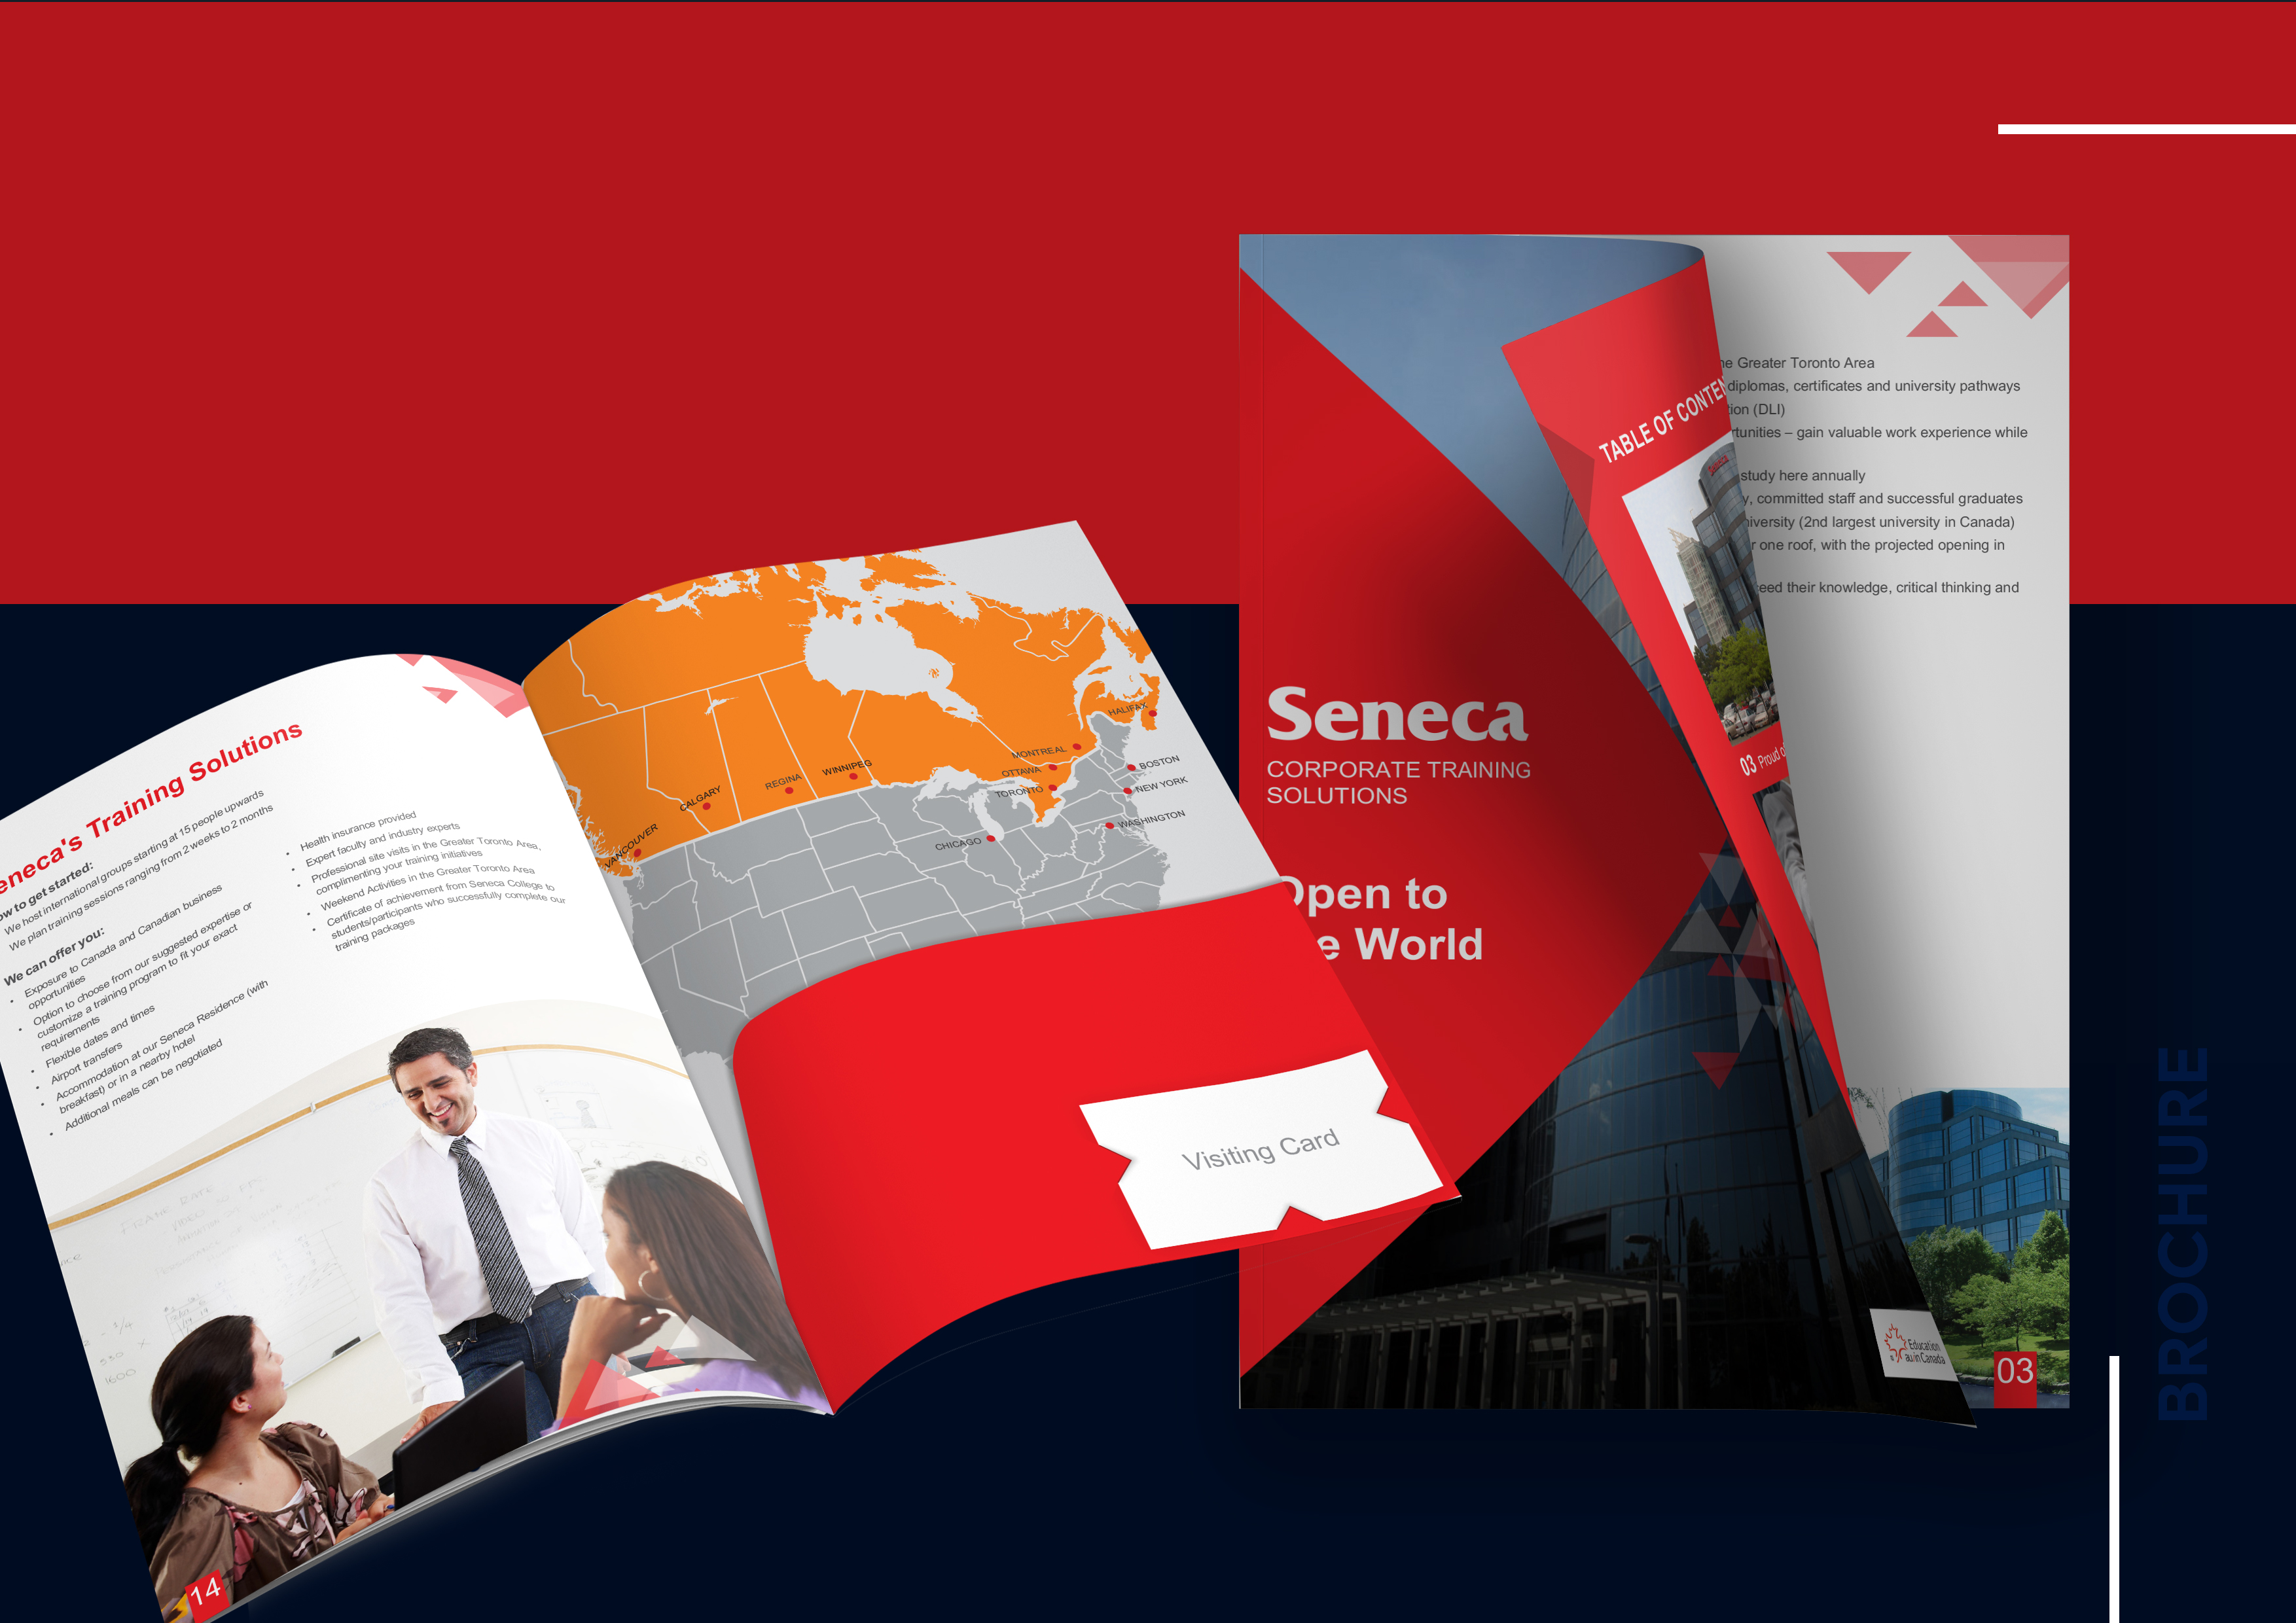 Seneca Corporate Training Solutions